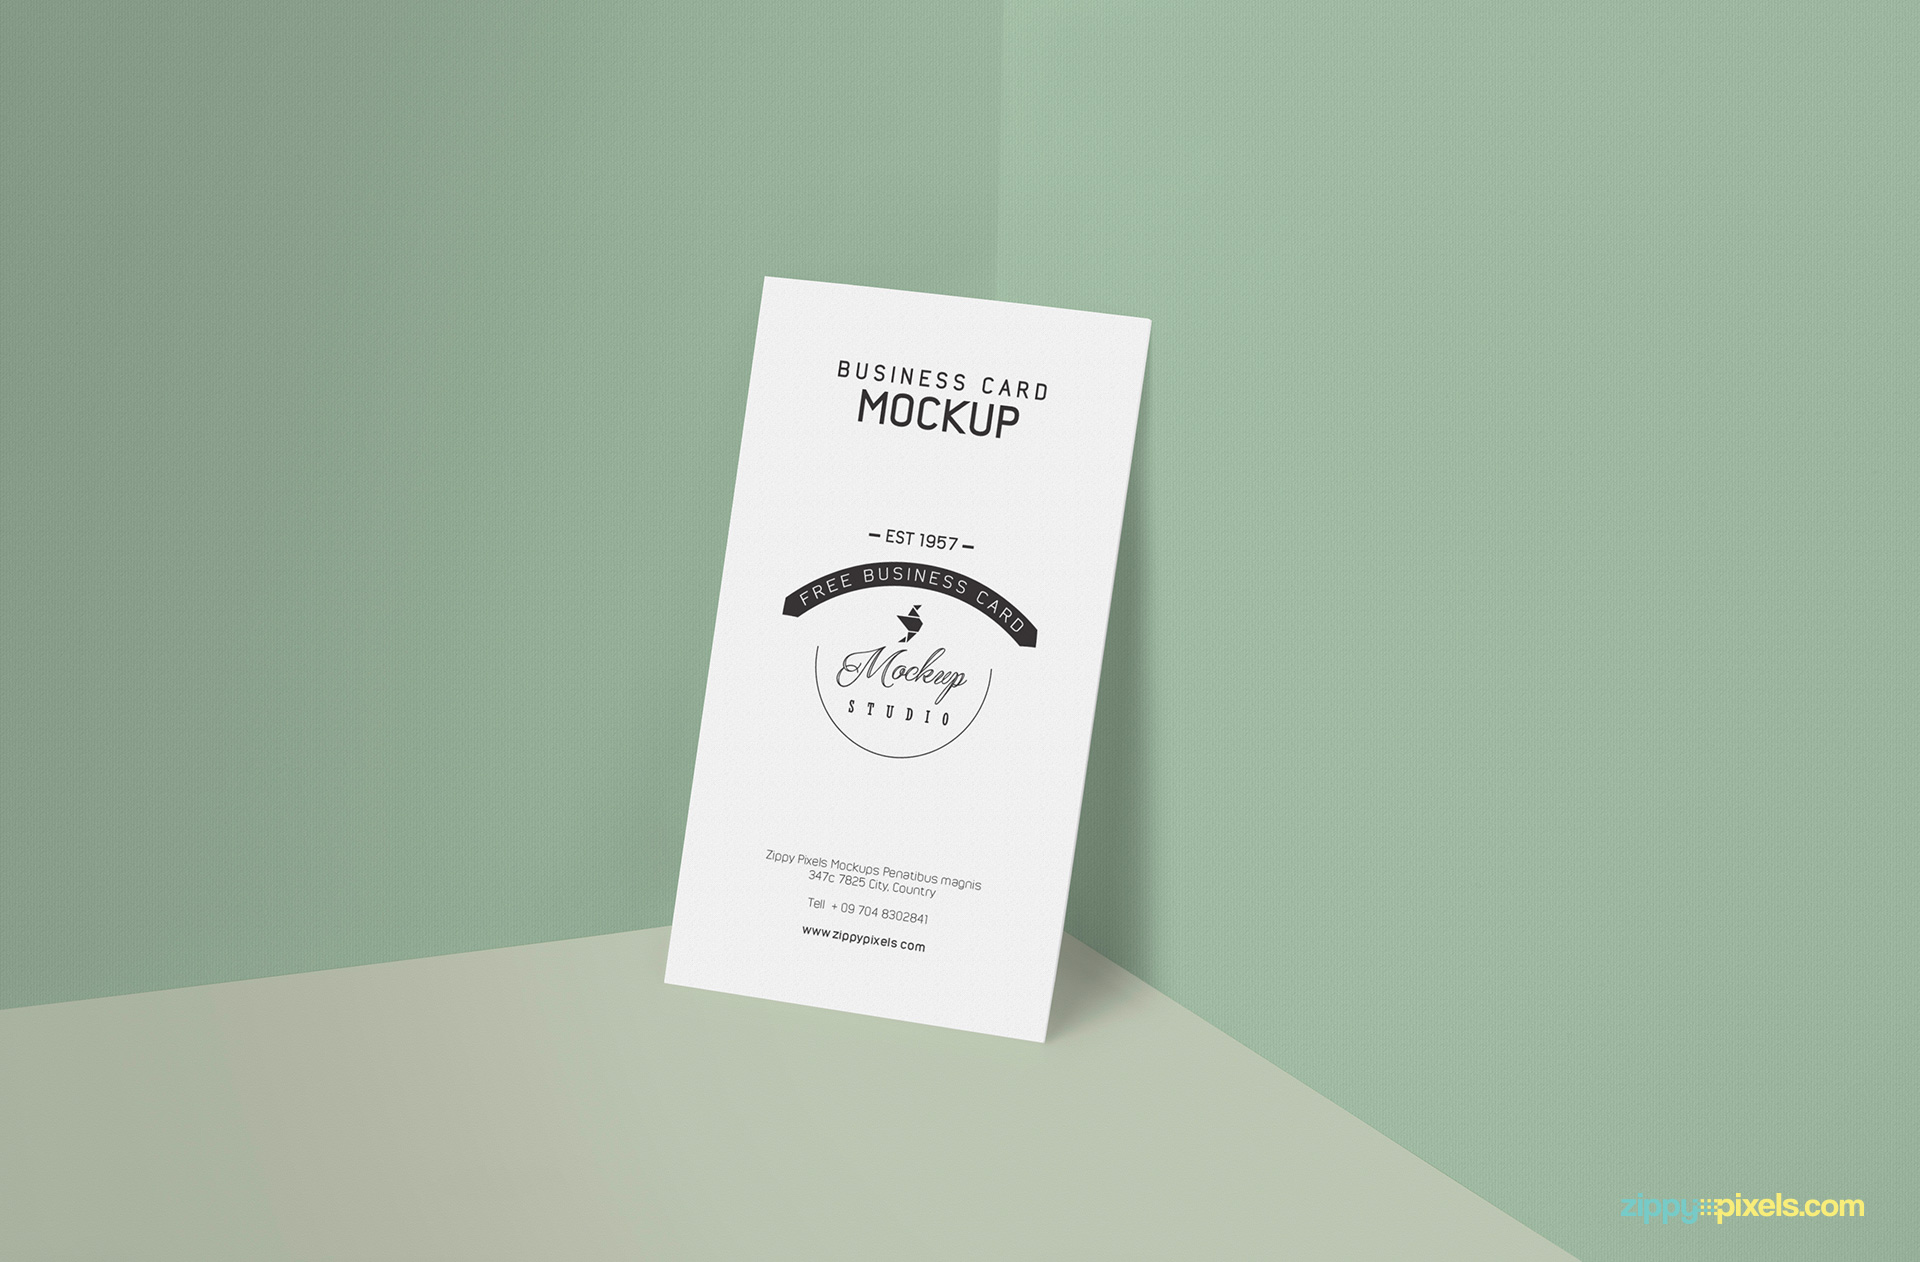 Free business card mockup zippypixels free business card mockup in psd format reheart Gallery